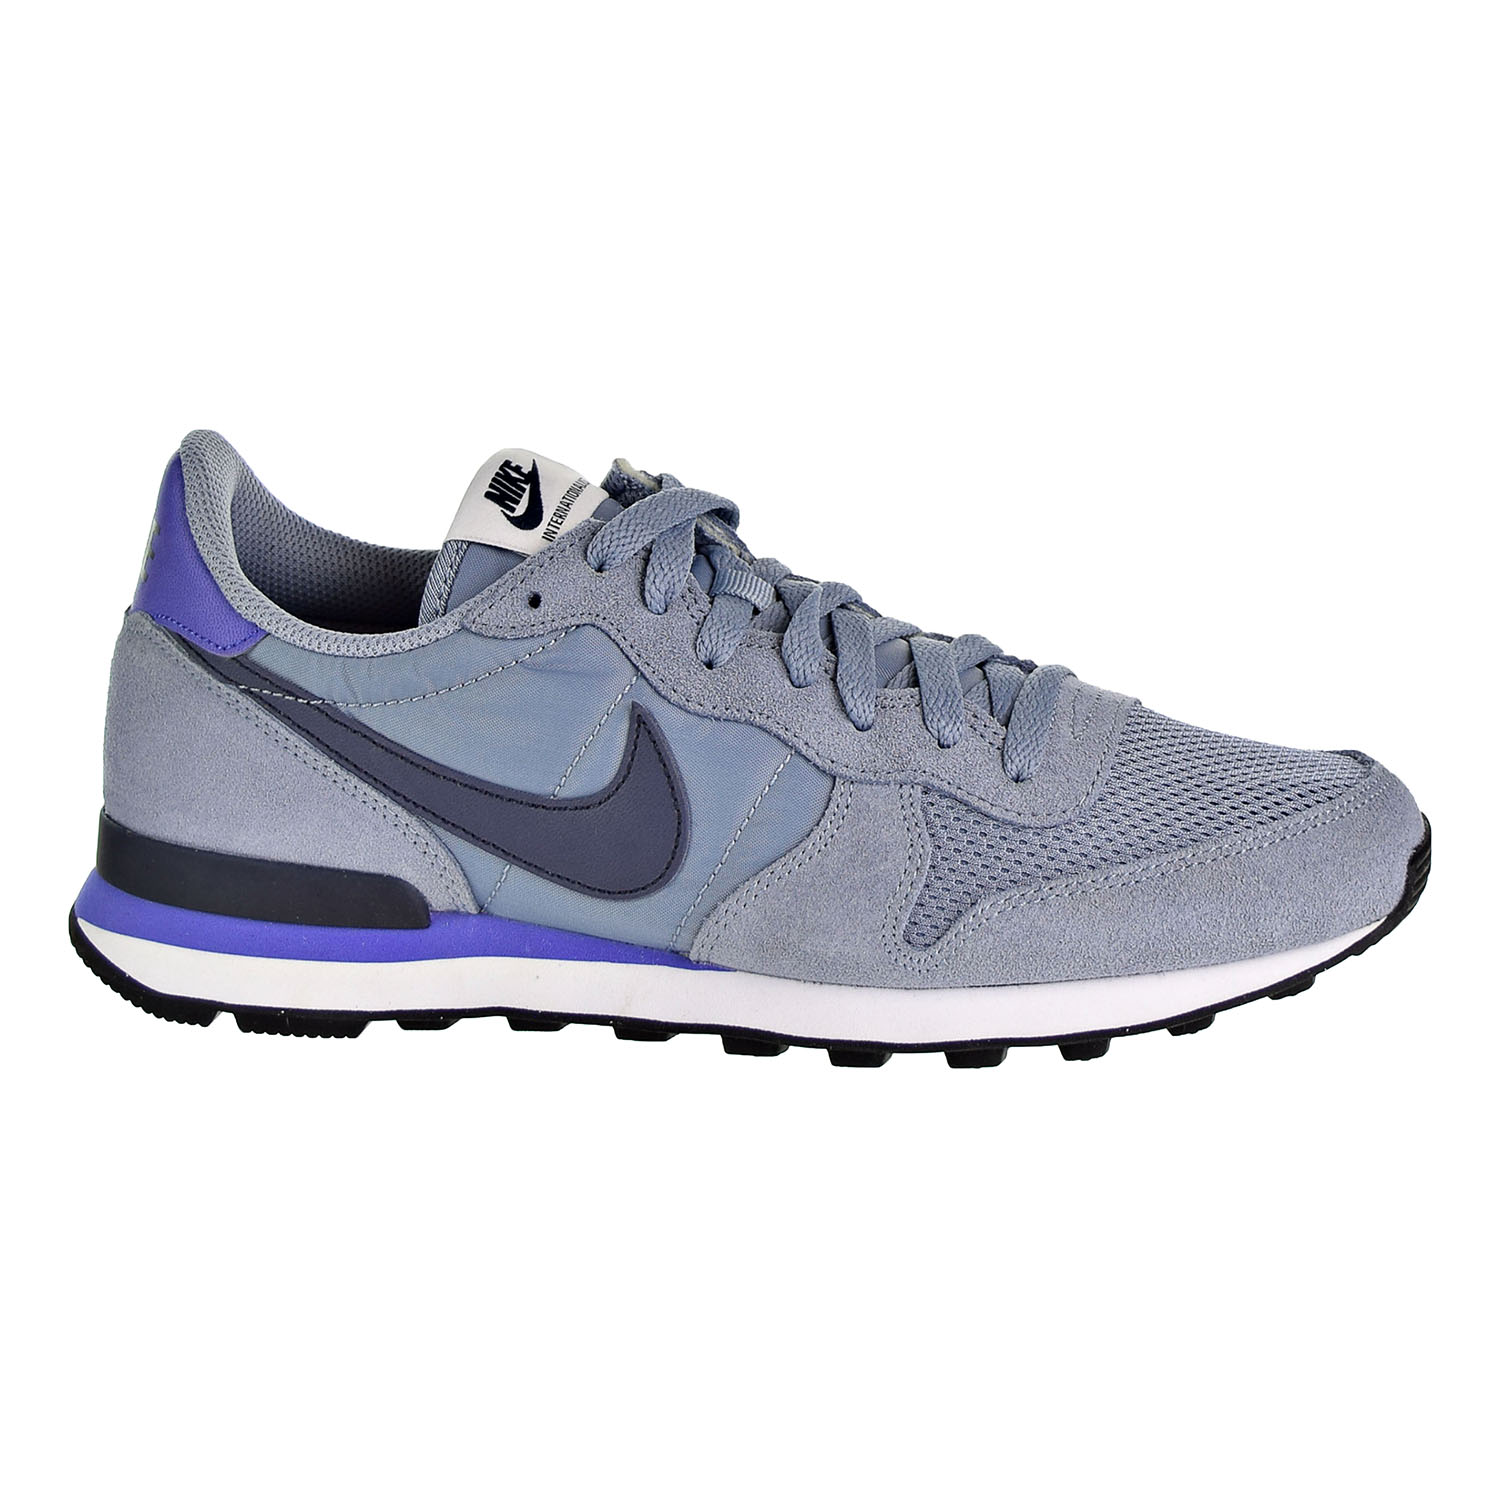 online store 8ae0e 9c3ba ... ireland nike internationalist mens shoes cool blue obsidian prsn white  631754 404 32bfb 72126